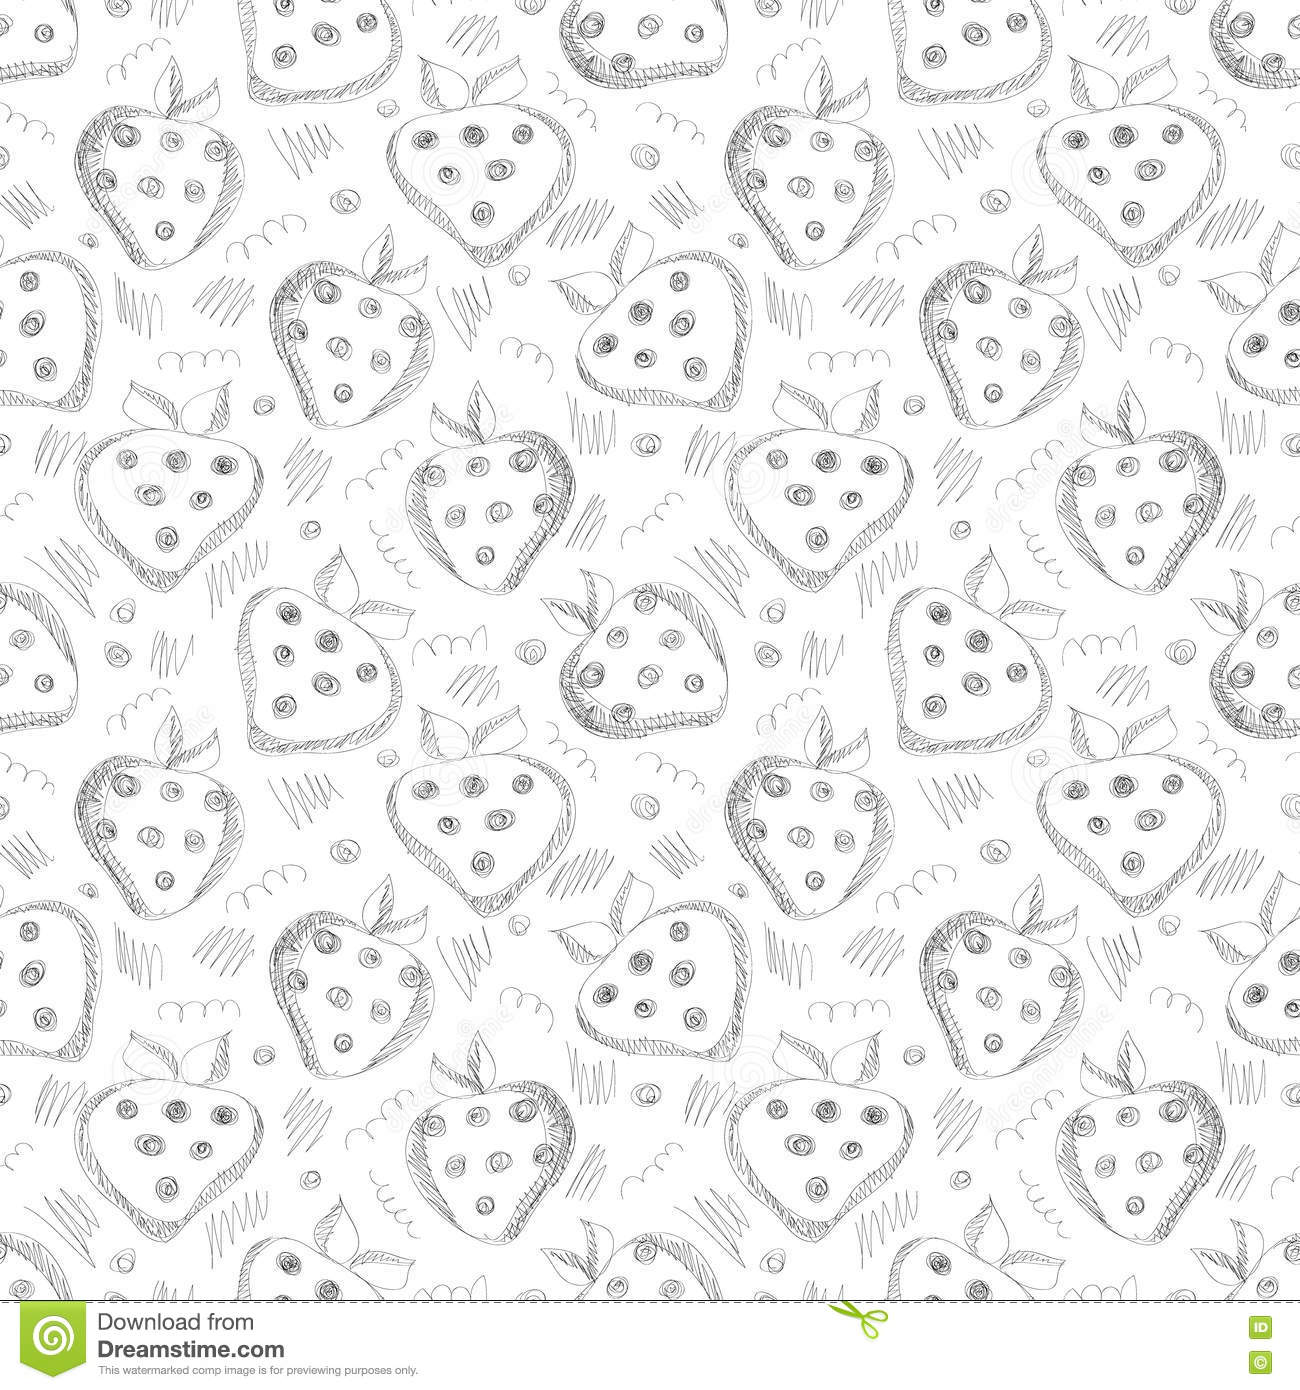 Seamless vector gray pattern with hand drawn strawberries and scribbles on the white background.